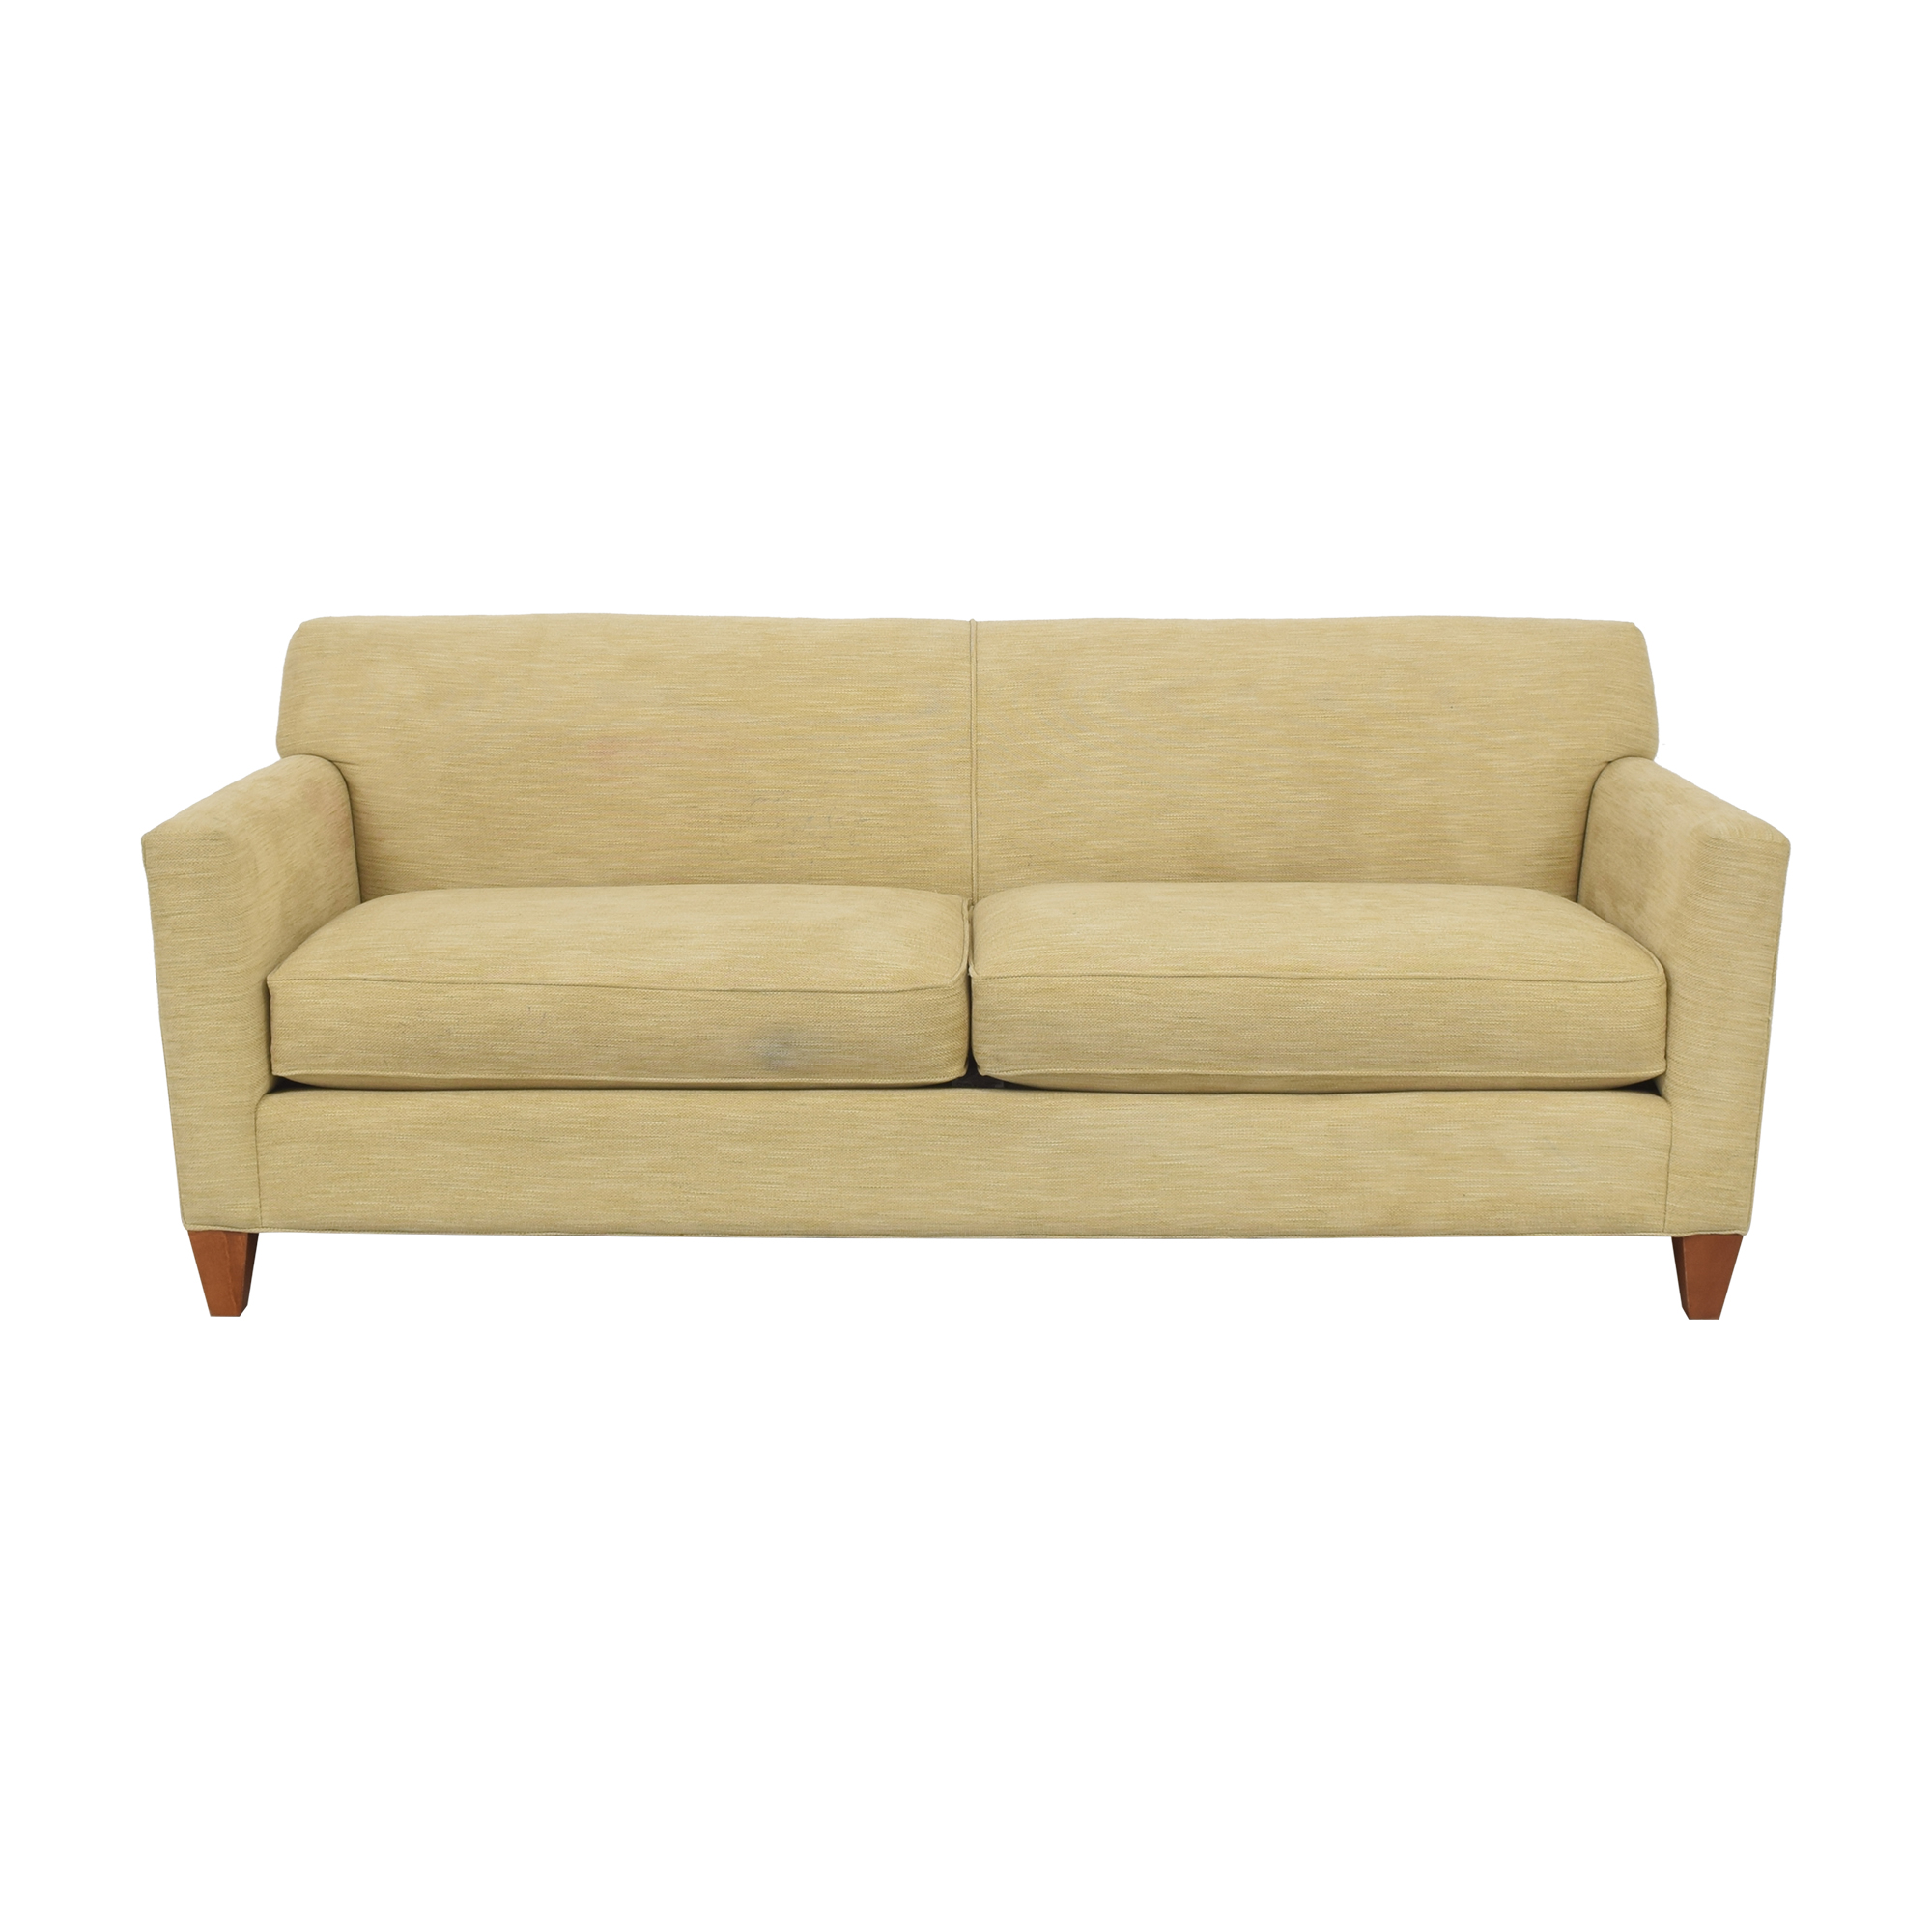 Crate & Barrel Crate & Barrel Two Cushion Sofa used